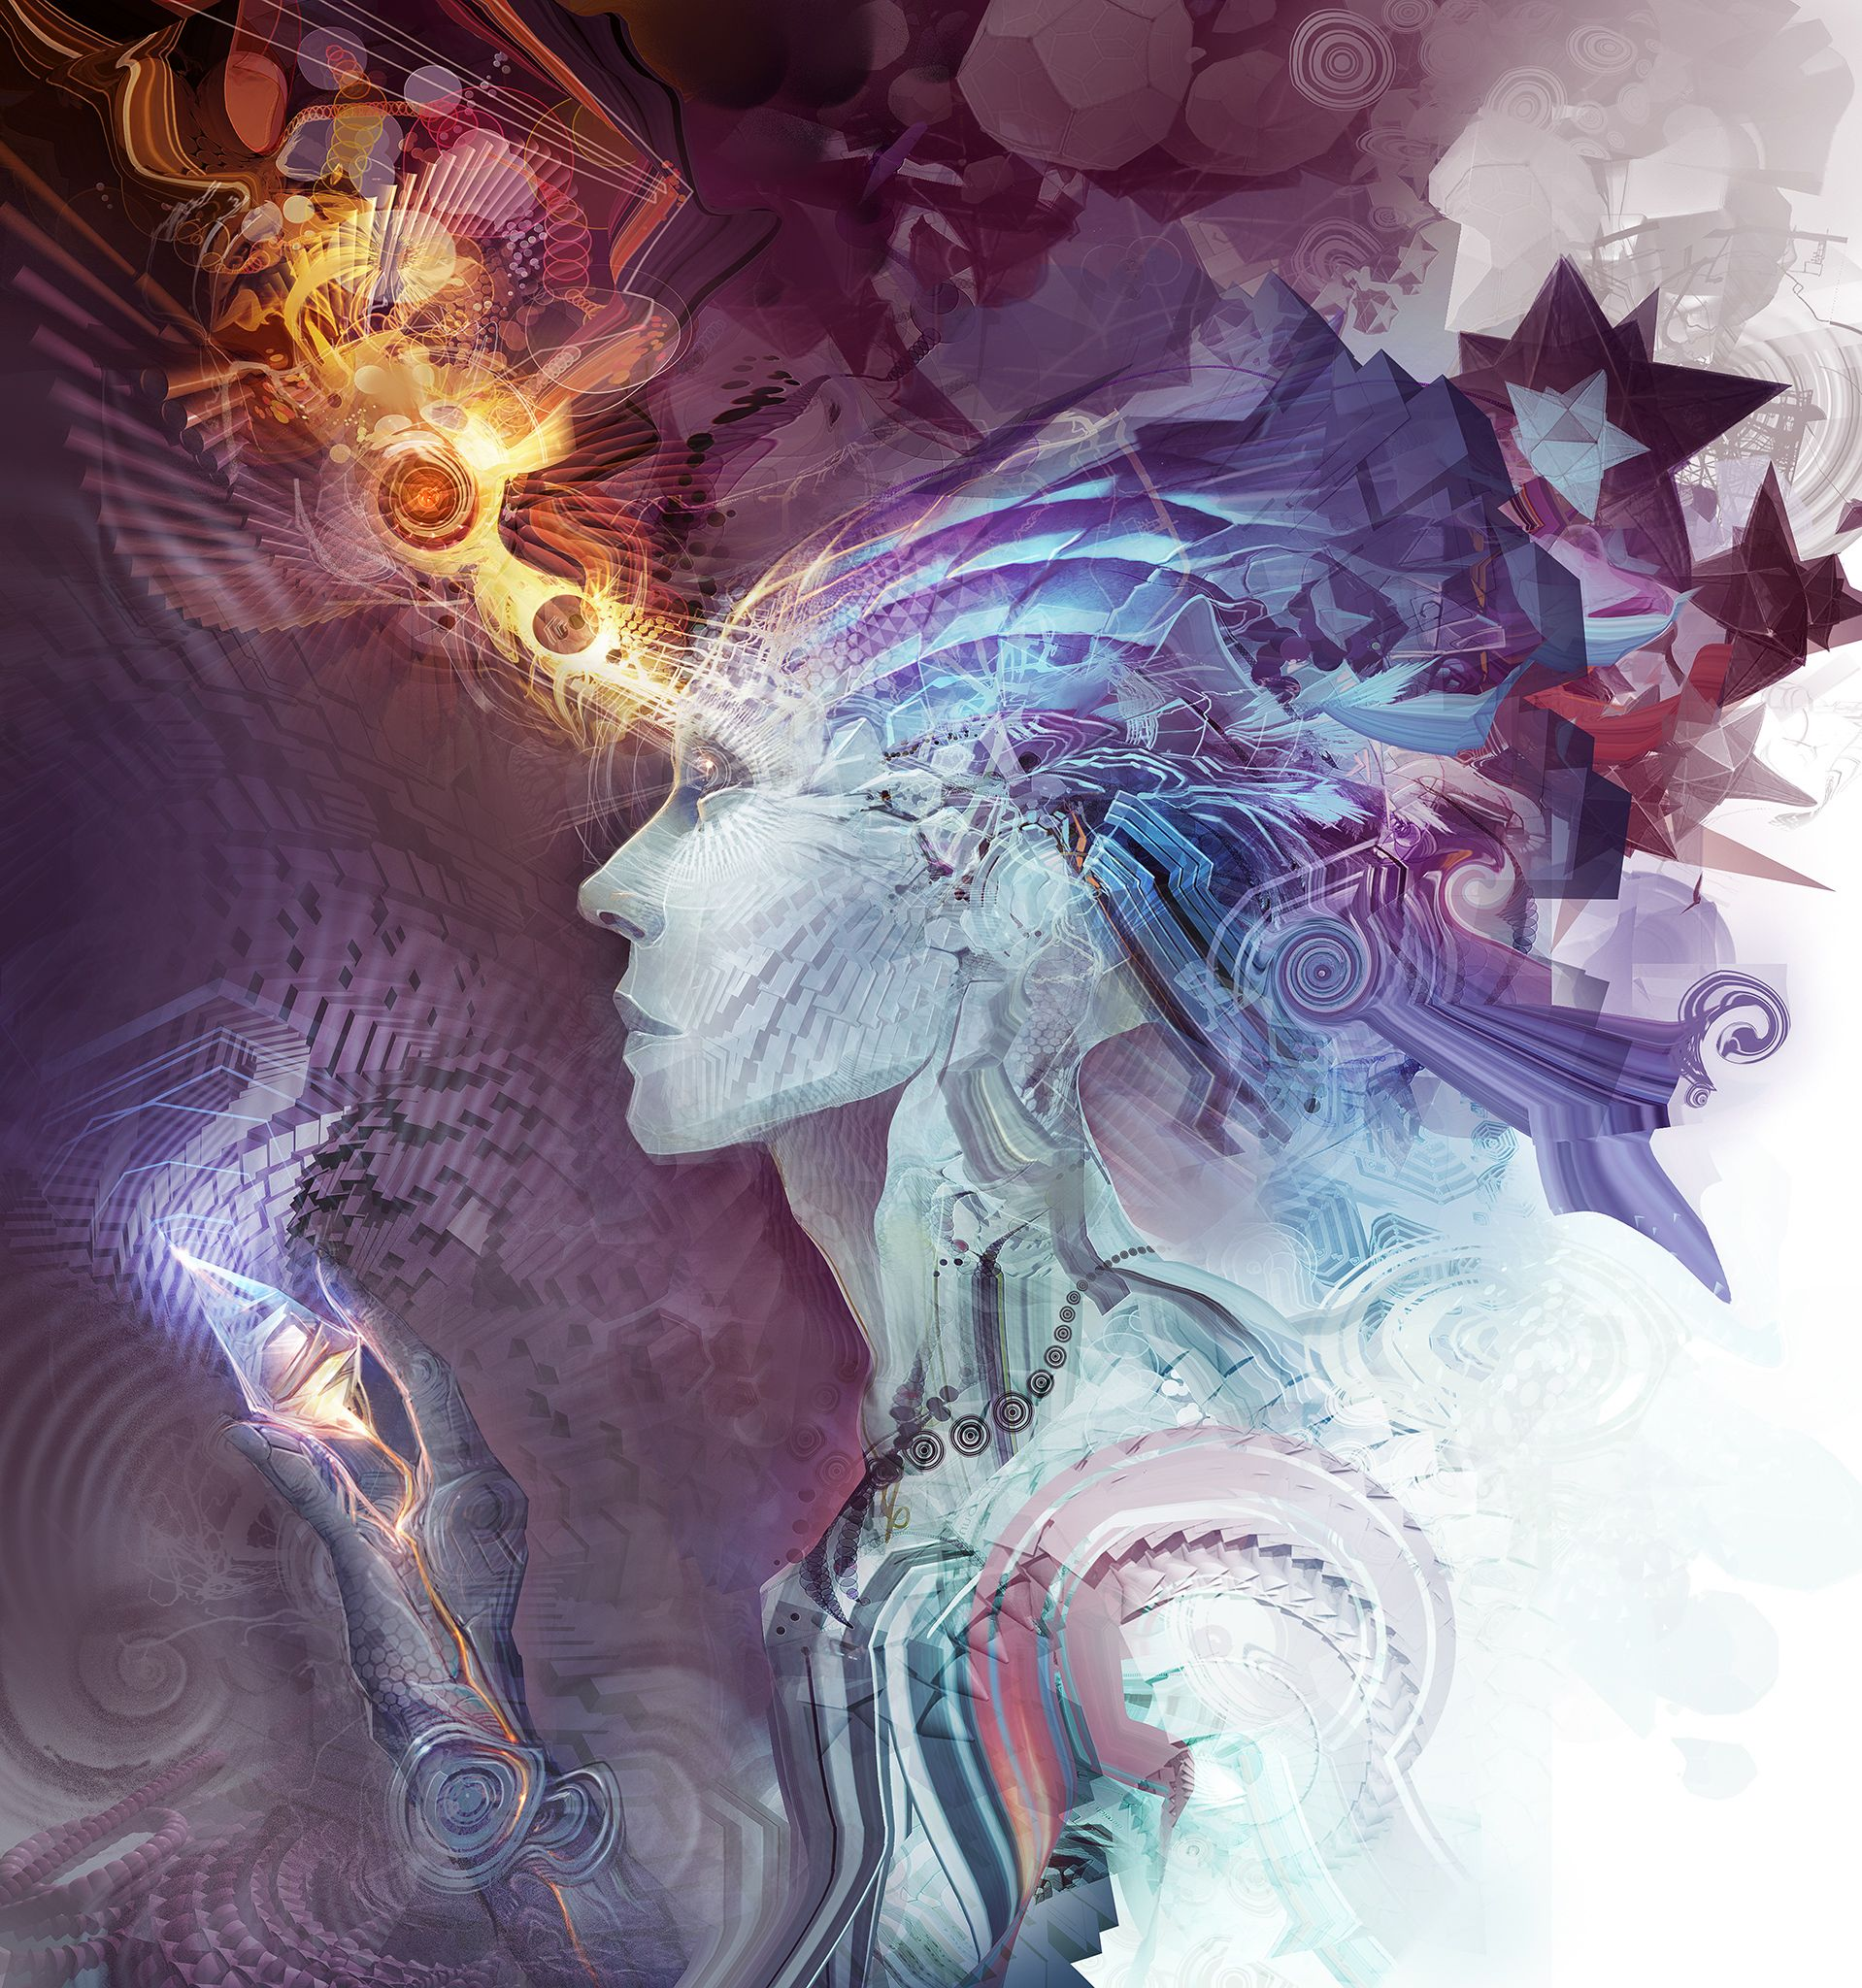 Psychedelic Wallpaper Android: Interdimensional Phades